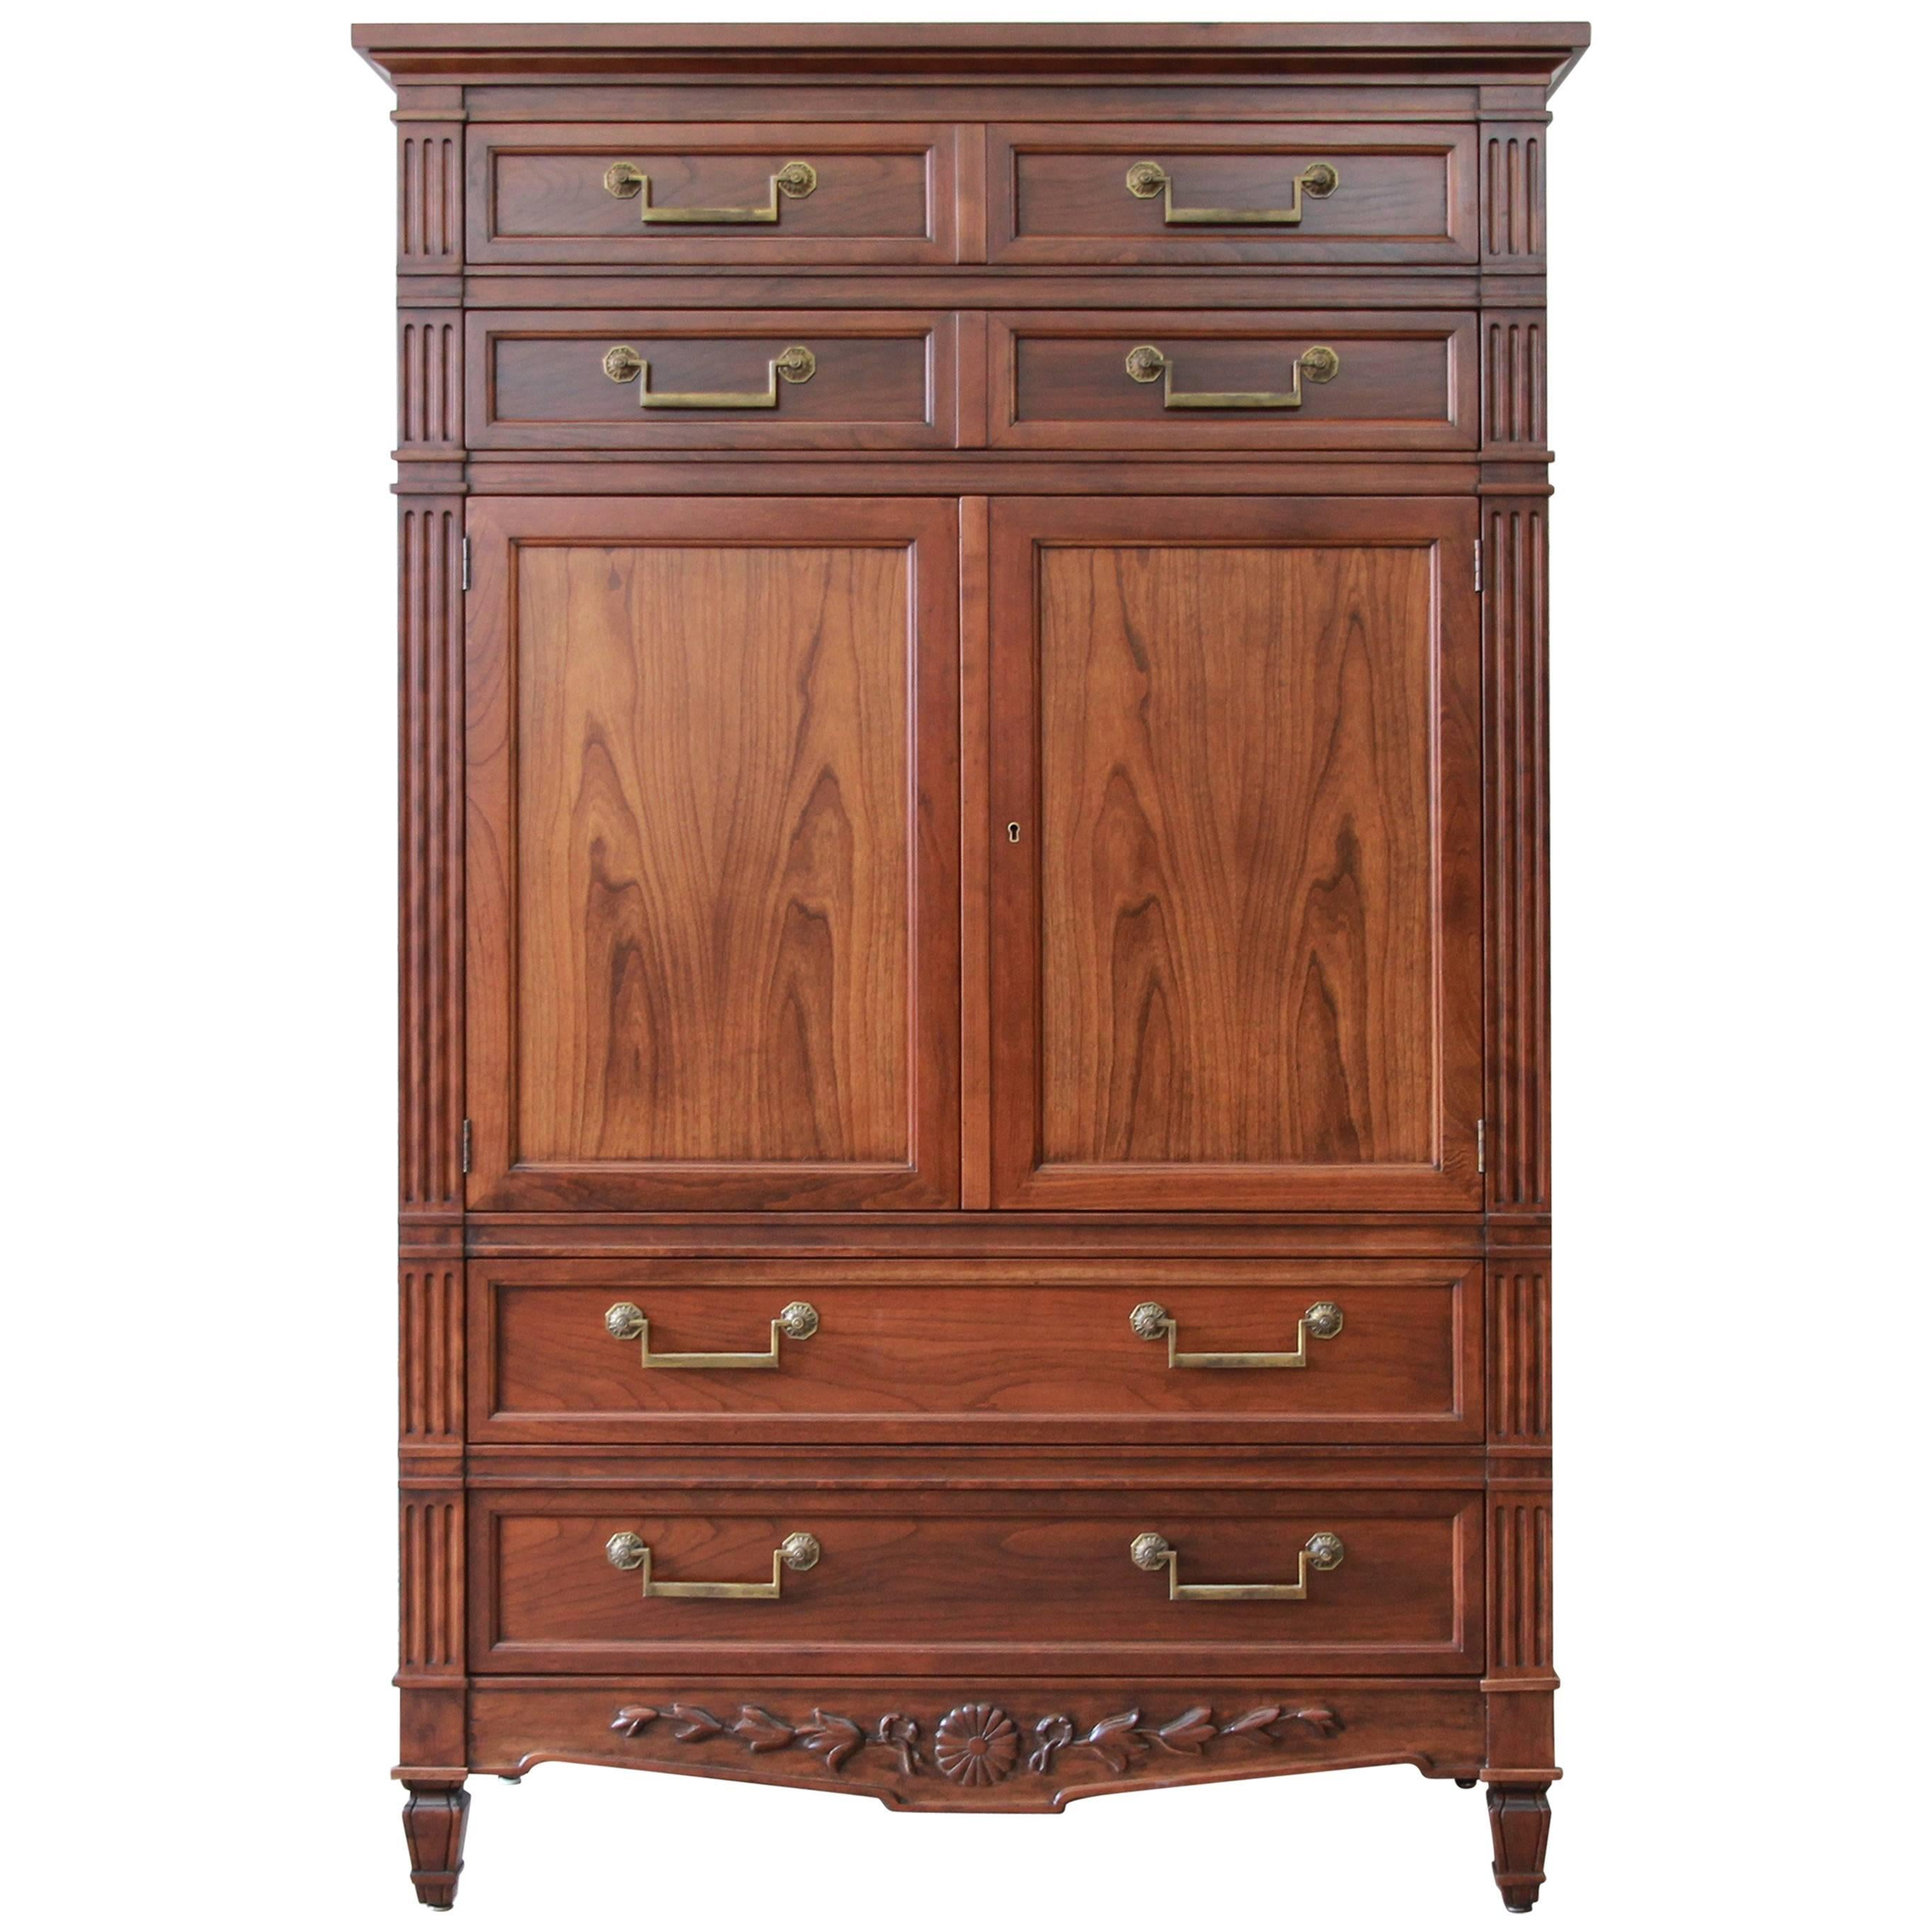 Bon Baker Furniture French Regency Style Cherrywood Armoire Dresser Chest For  Sale